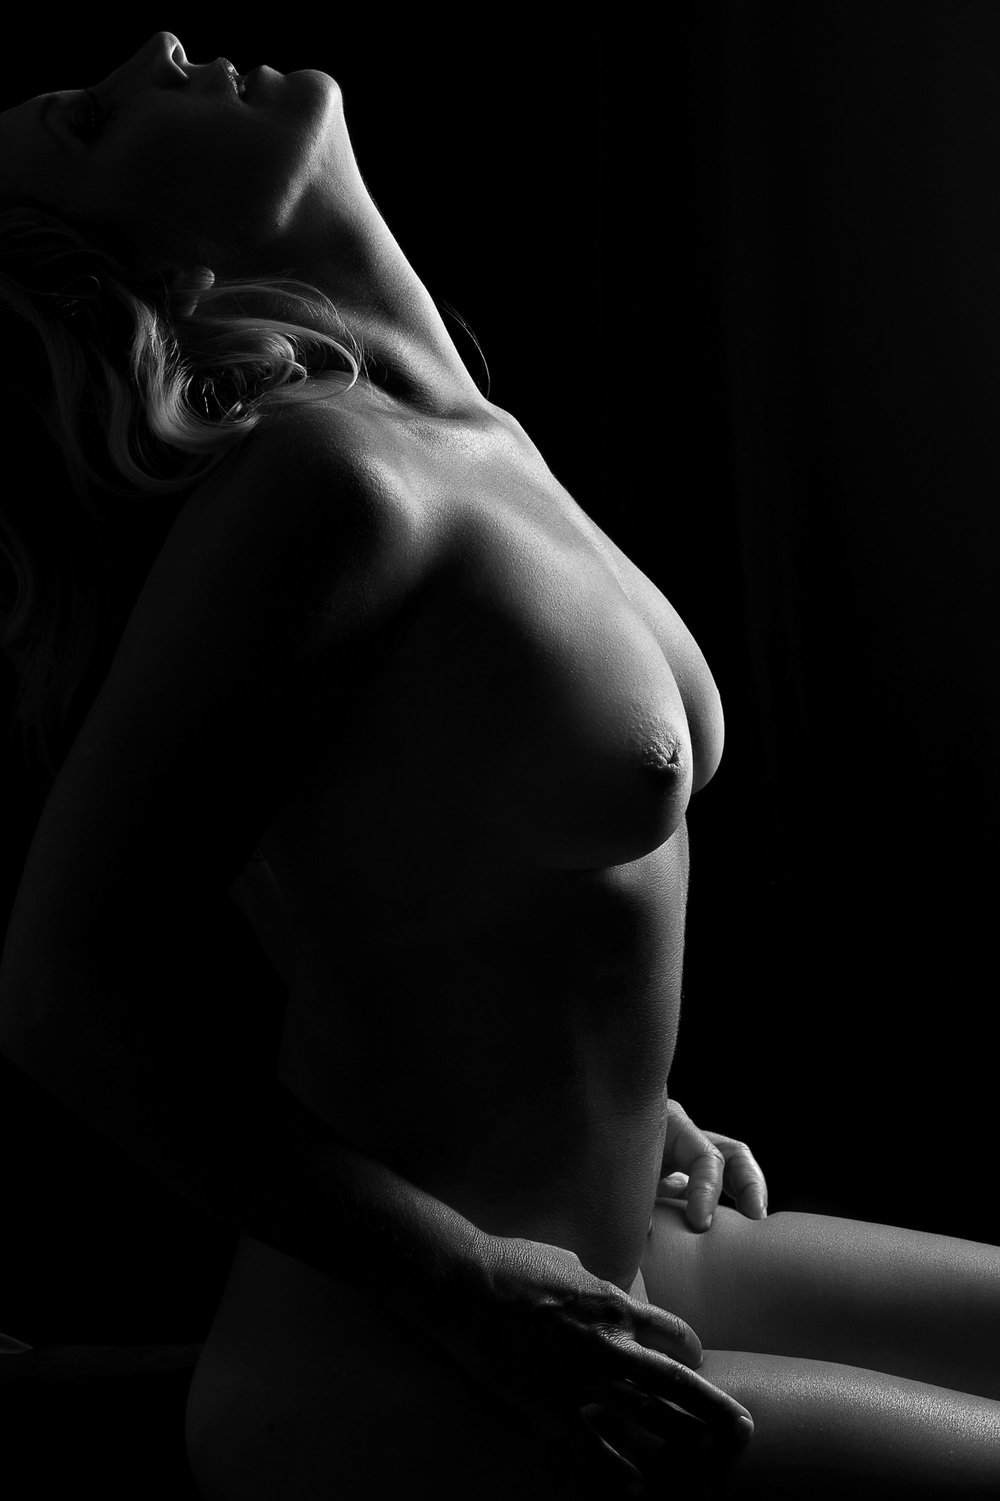 black and white bodyscape of woman from side